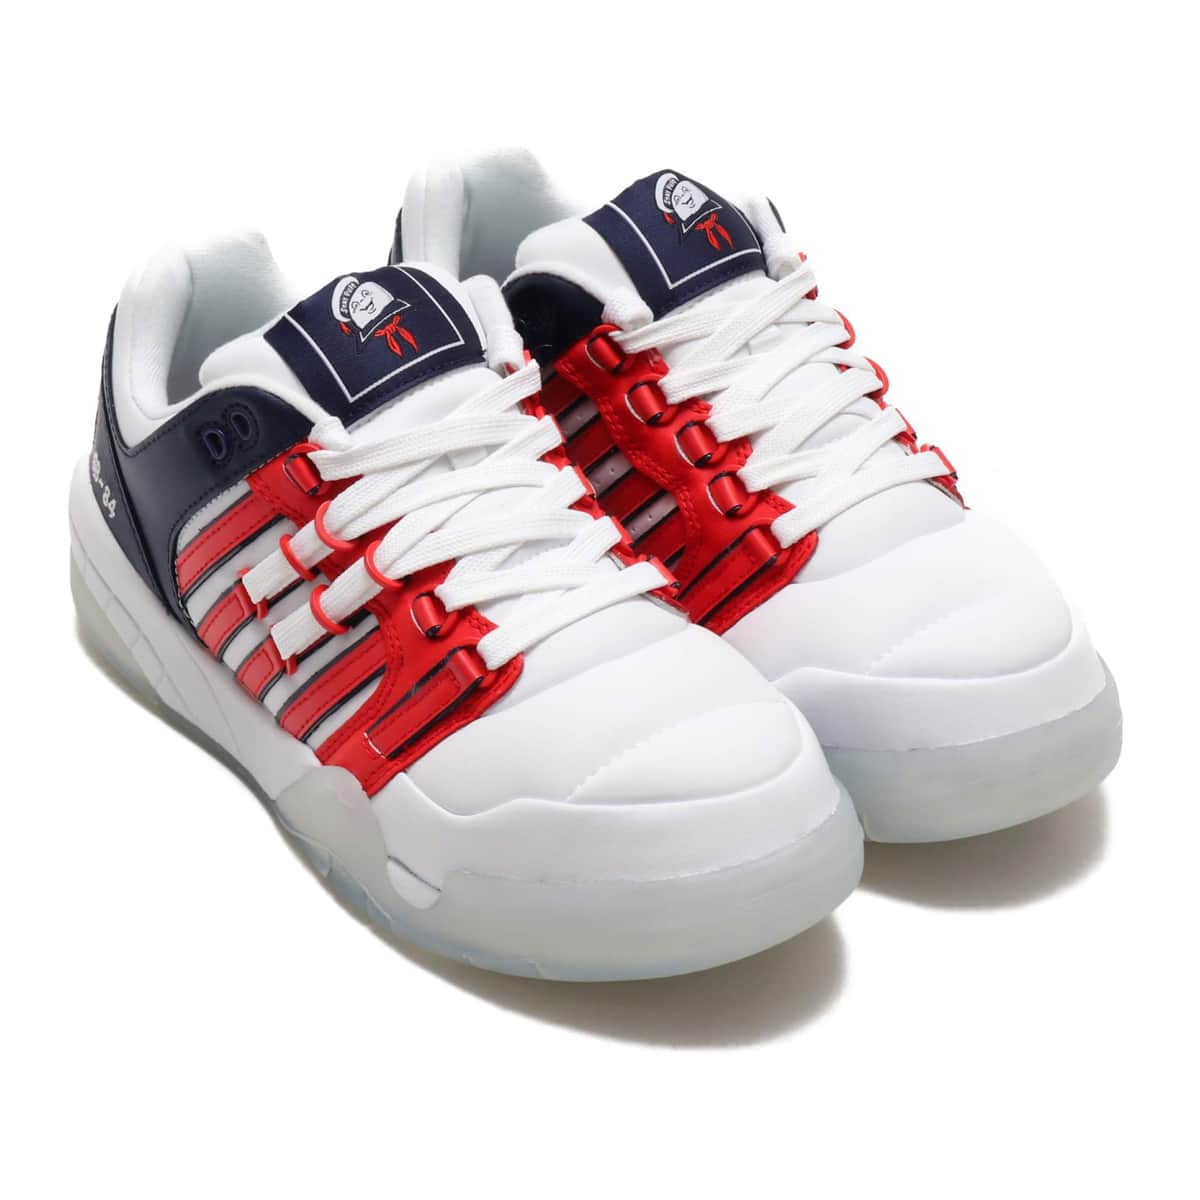 K-SWISS Si-18 International GB STAY PUFT 19SP-S_photo_large